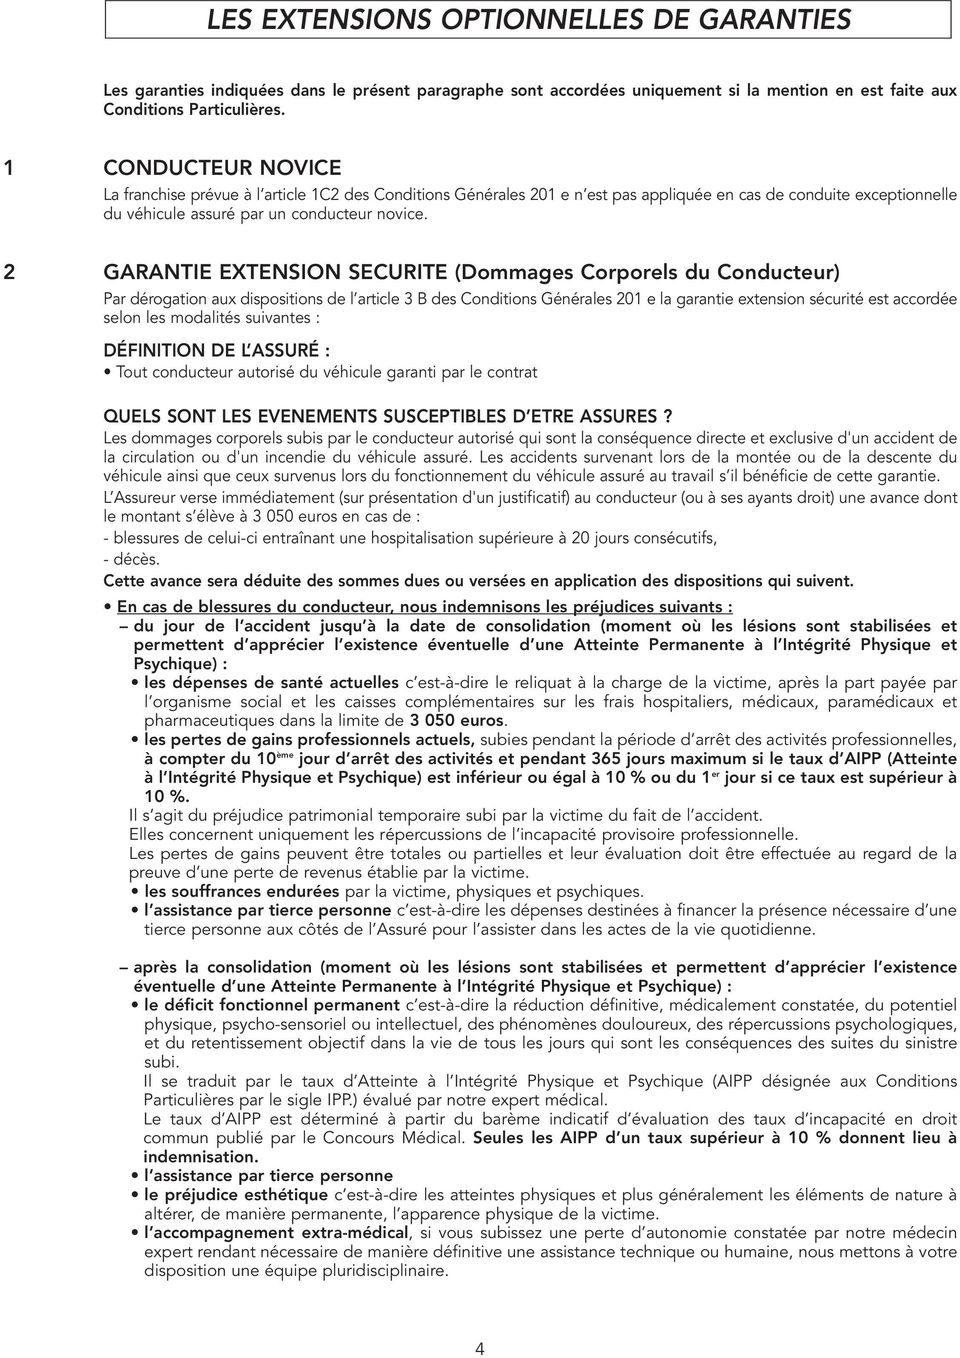 2 GARANTIE EXTENSION SECURITE (Dommages Corporels du Conducteur) Par dérogation aux dispositions de l article 3 B des Conditions Générales 201 e la garantie extension sécurité est accordée selon les